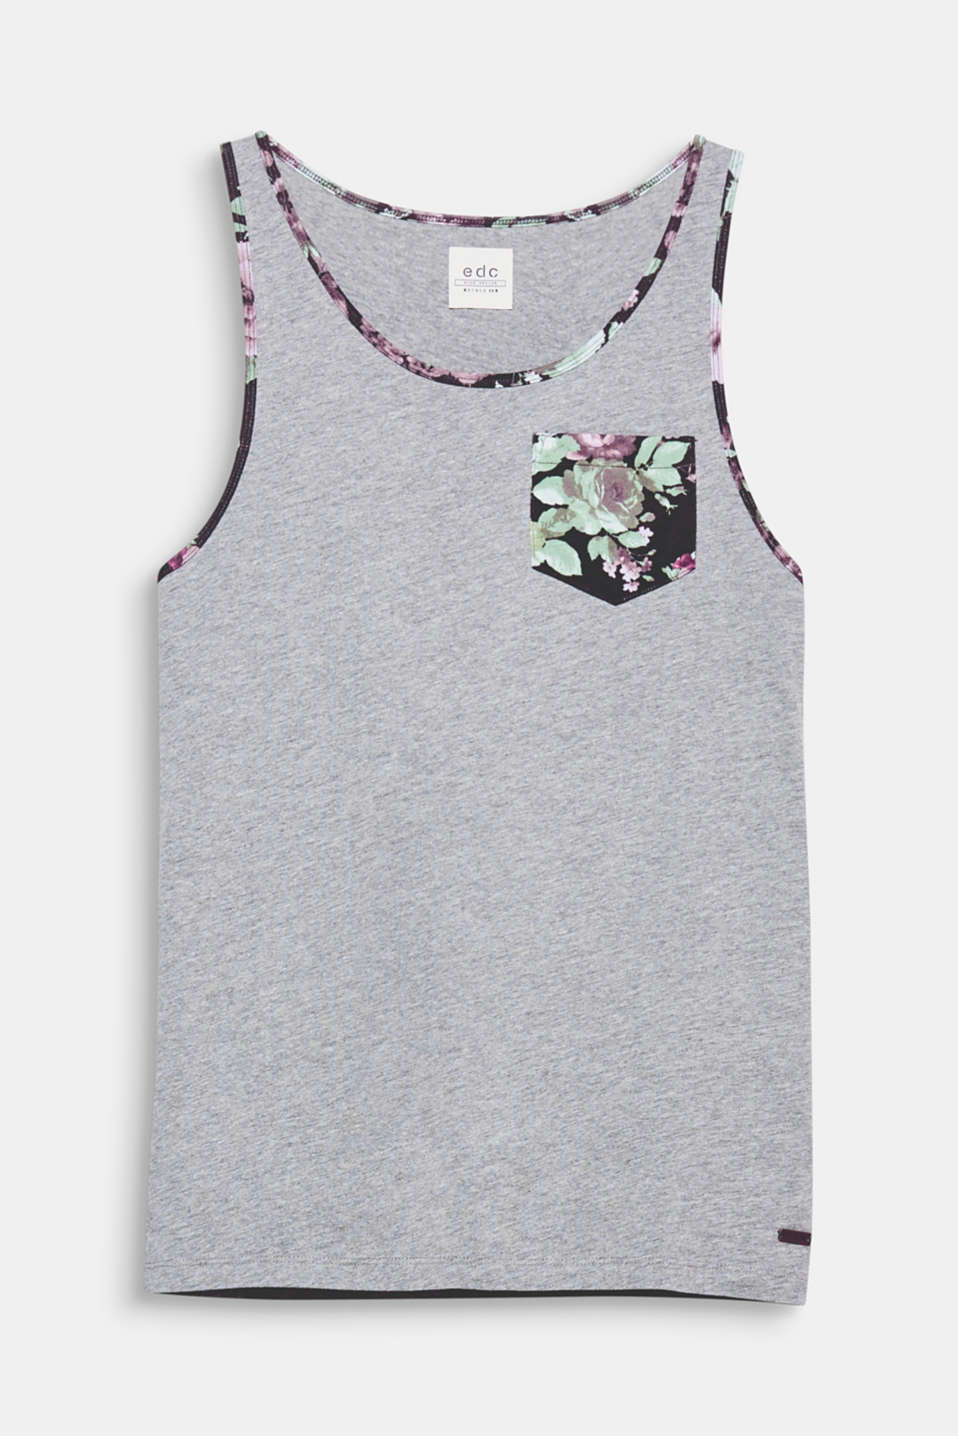 We love summer! The floral accents gives this vest a summery look.